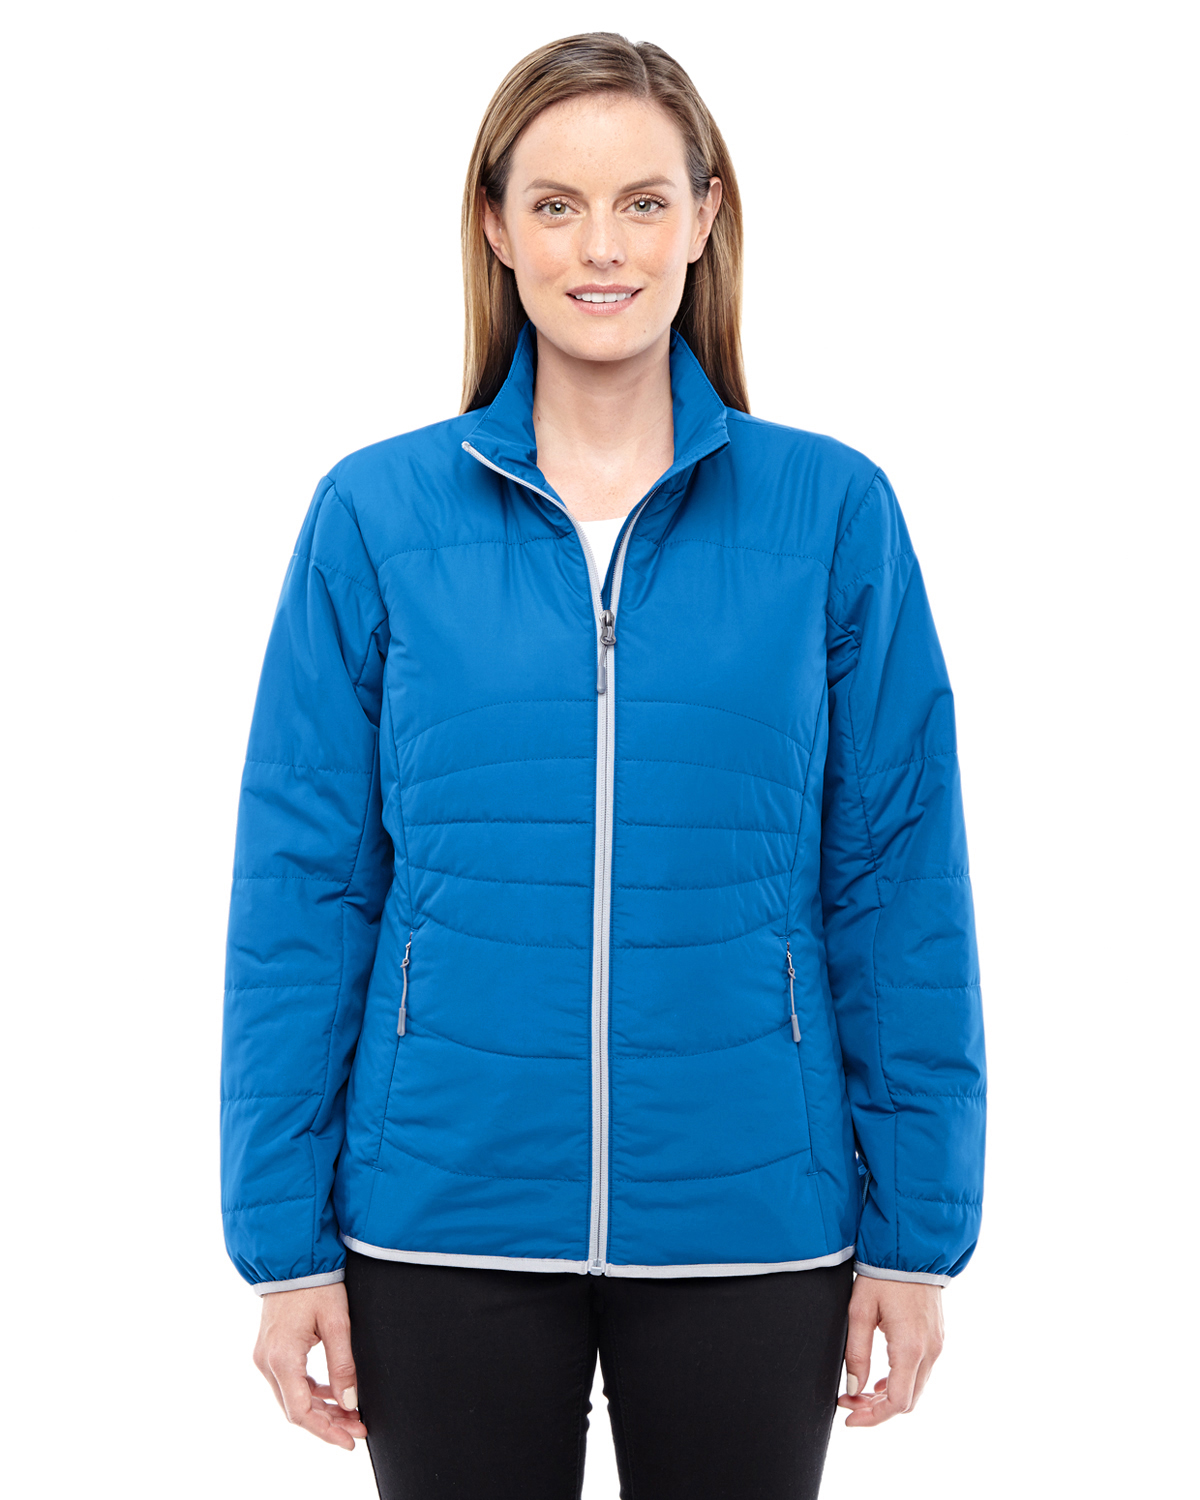 Ash City - North End 78231 - Ladies' Resolve Interactive Insulated Packable Jacket